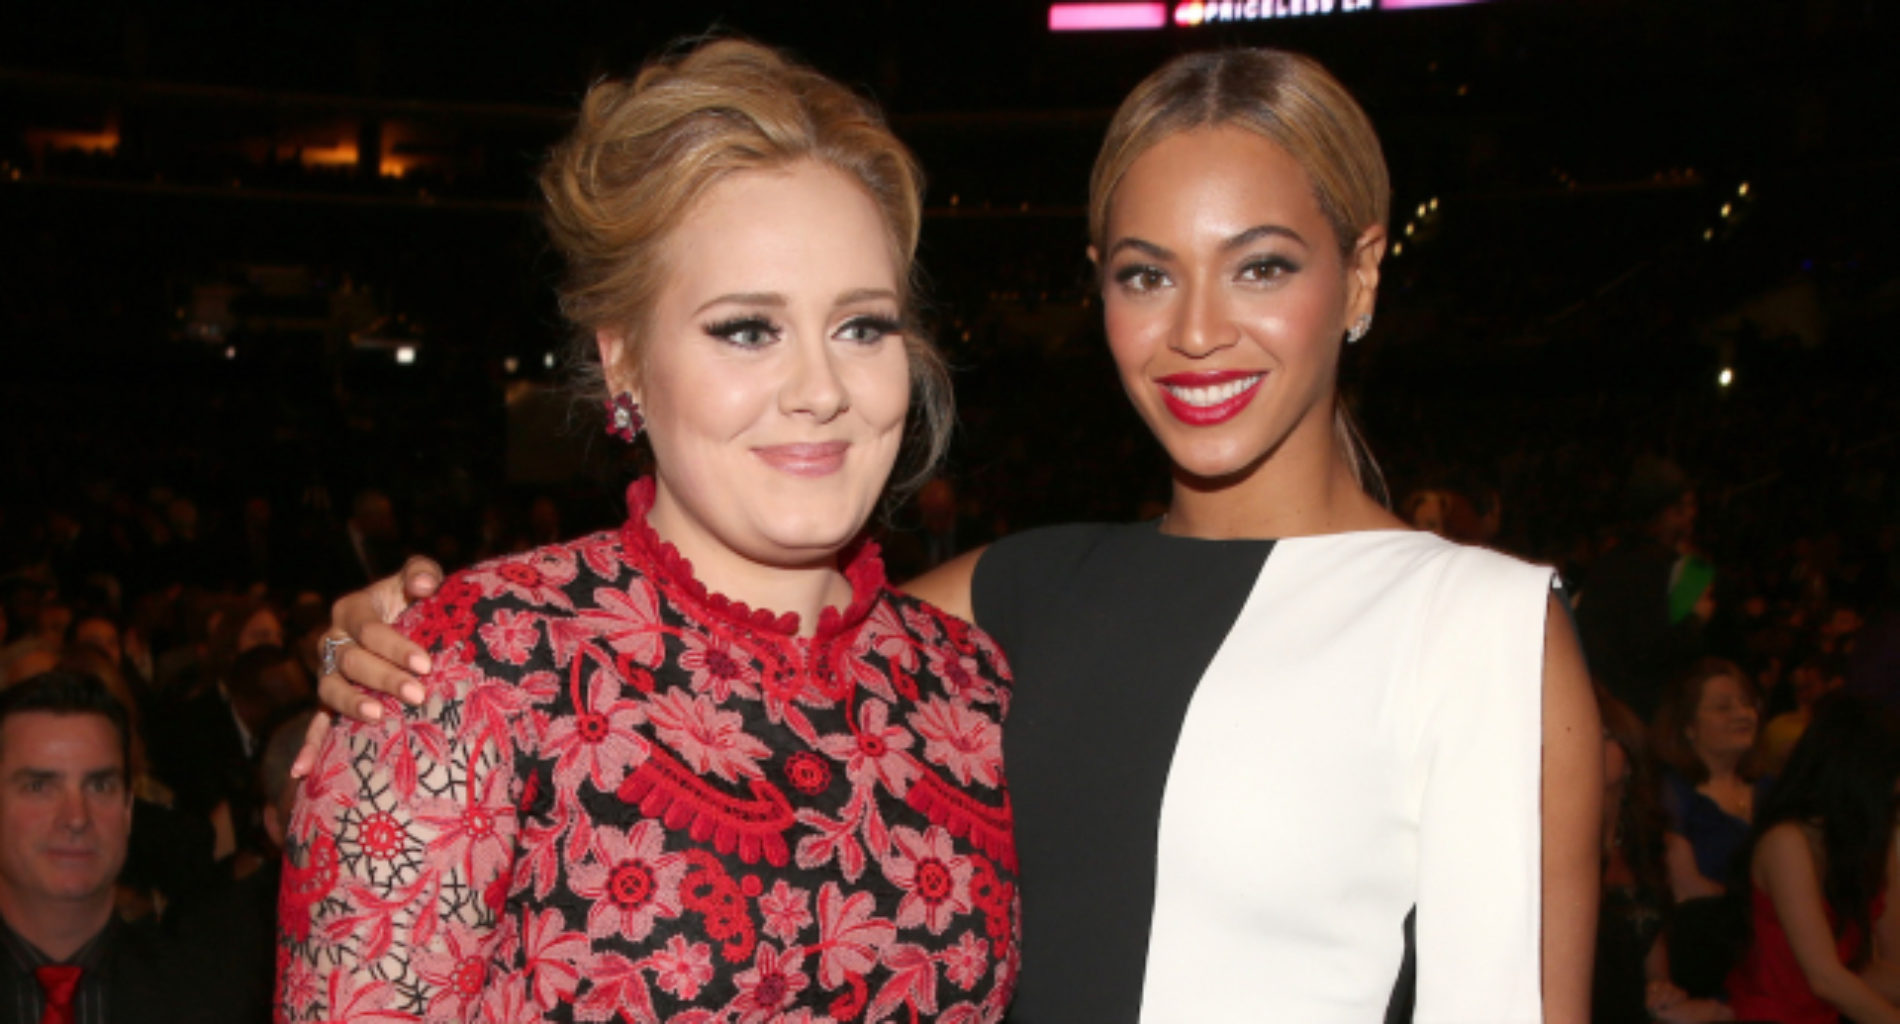 Adele Expresses Her Love For Beyoncé